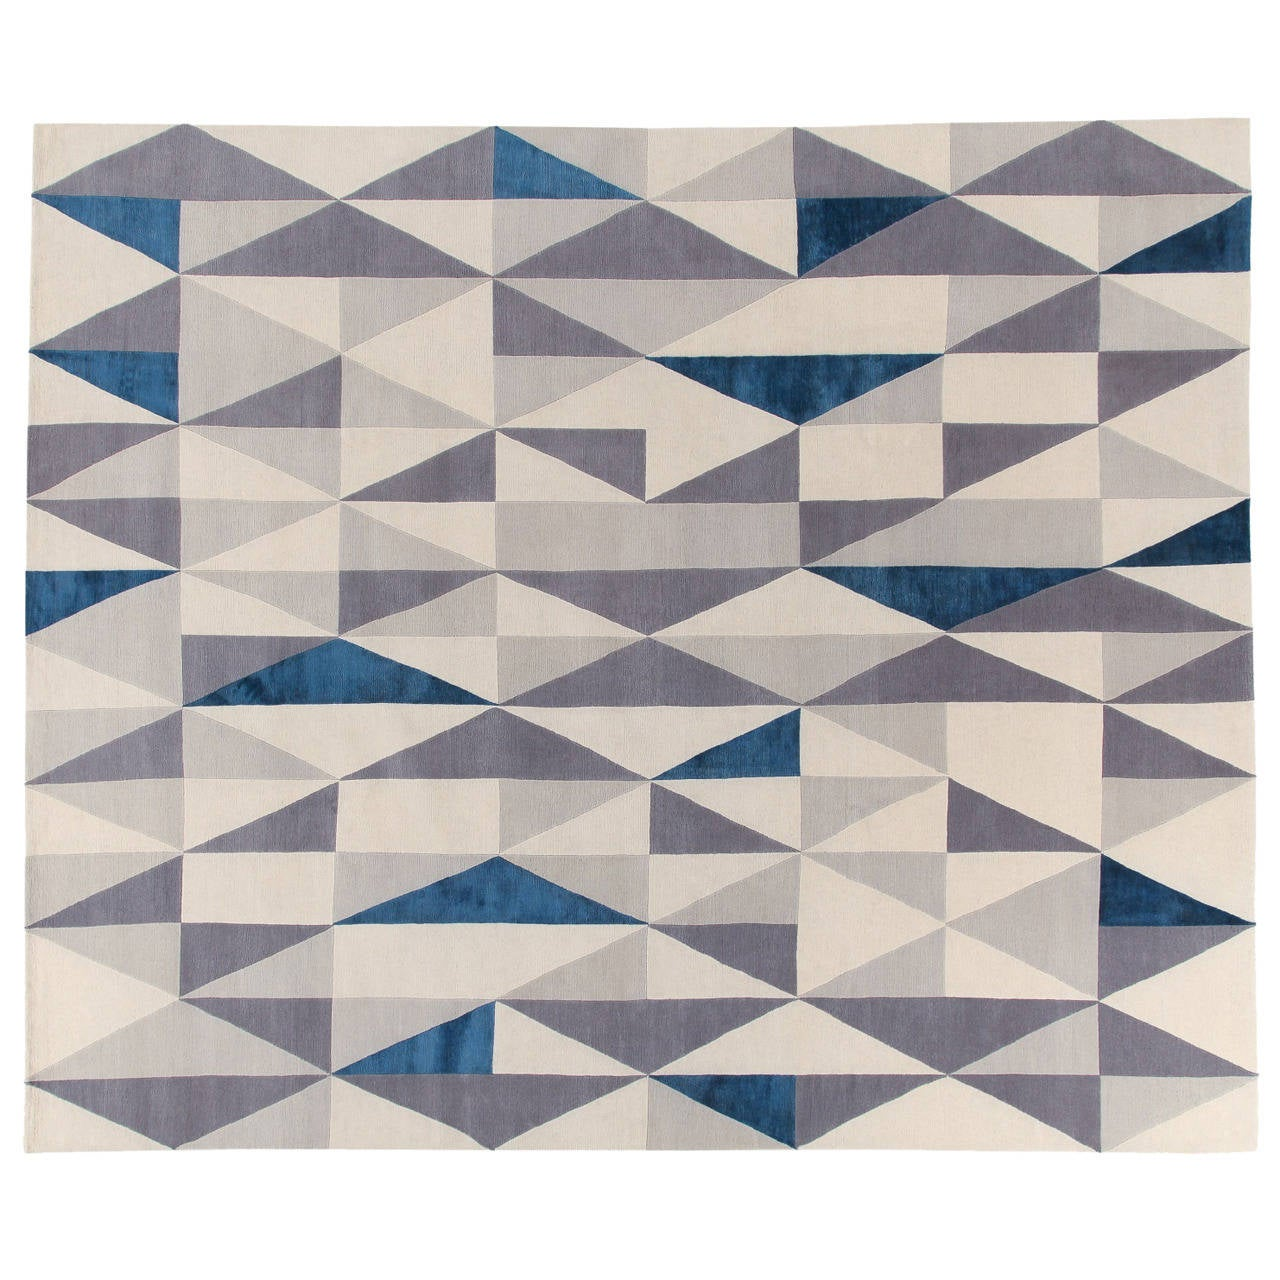 Diamantina Gio Ponti Carpet Collection For Sale At 1stdibs